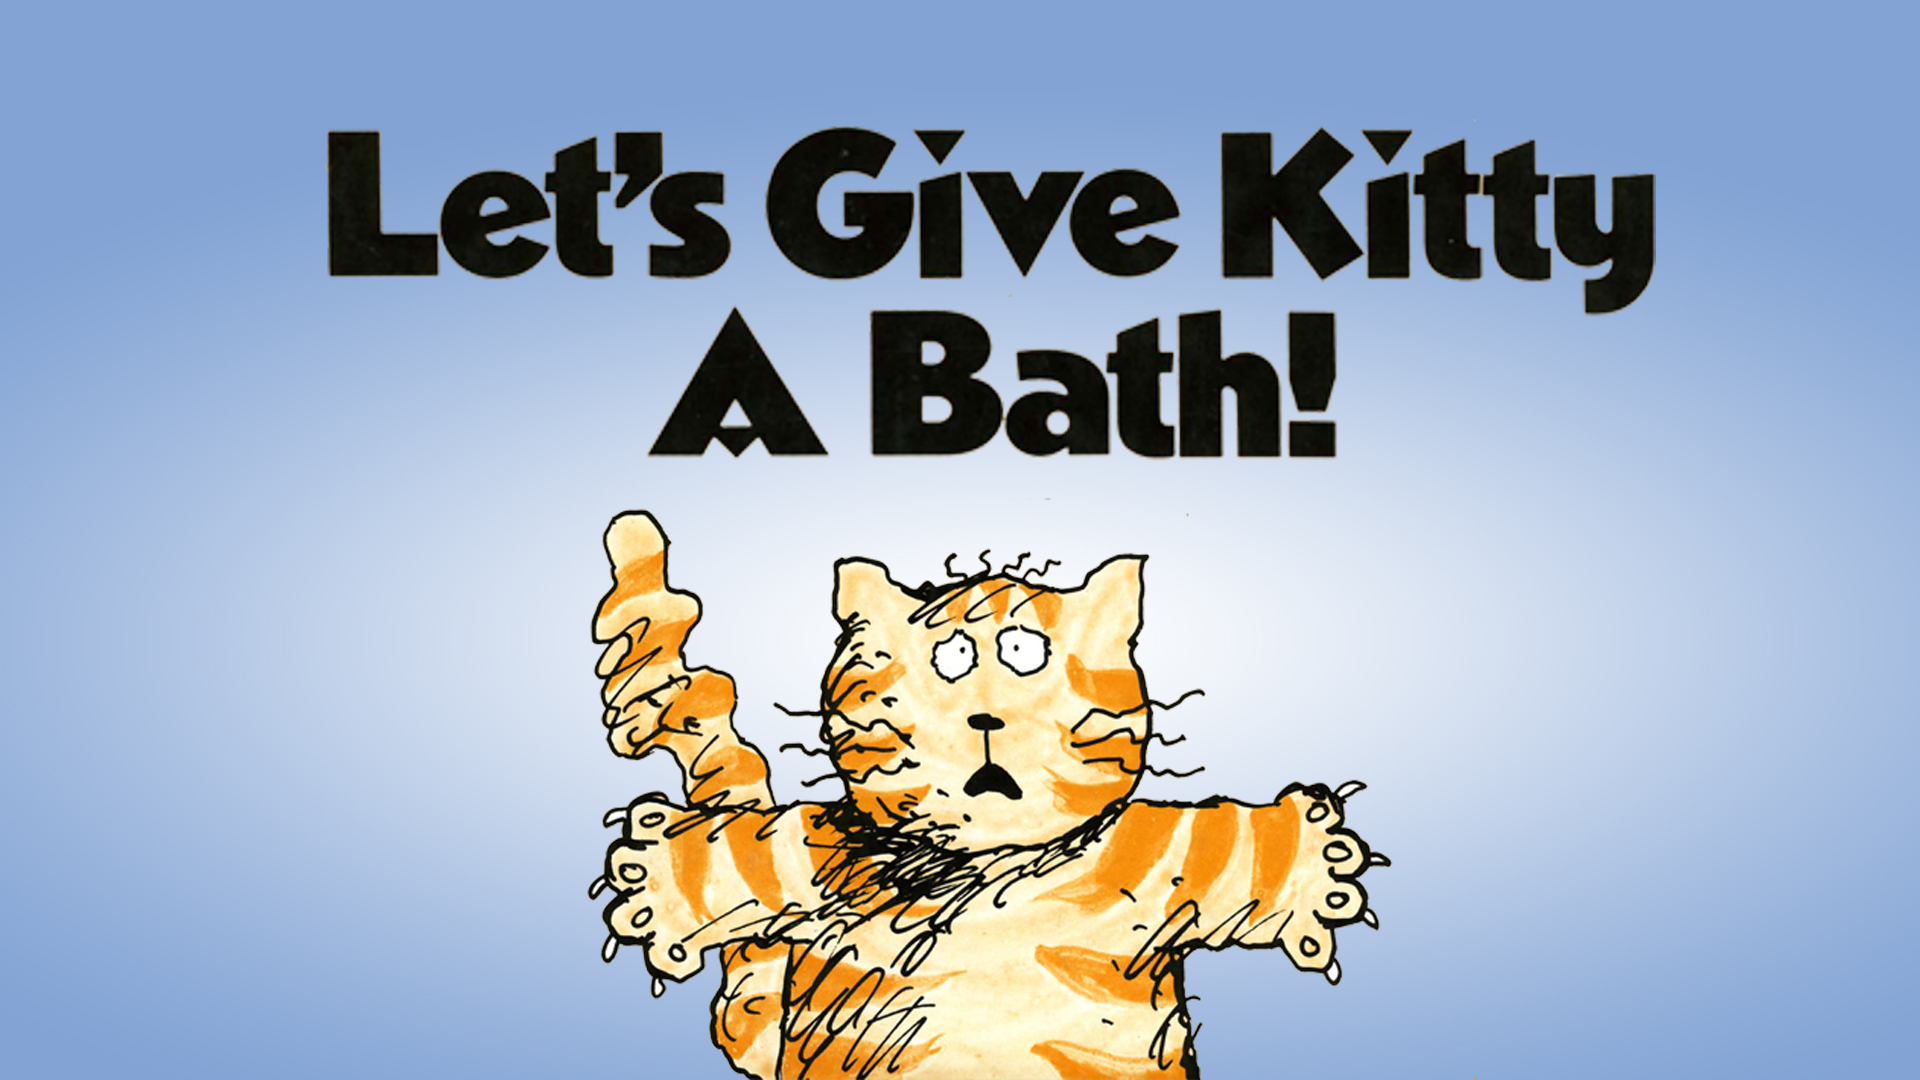 Let's Give Kitty a Bath